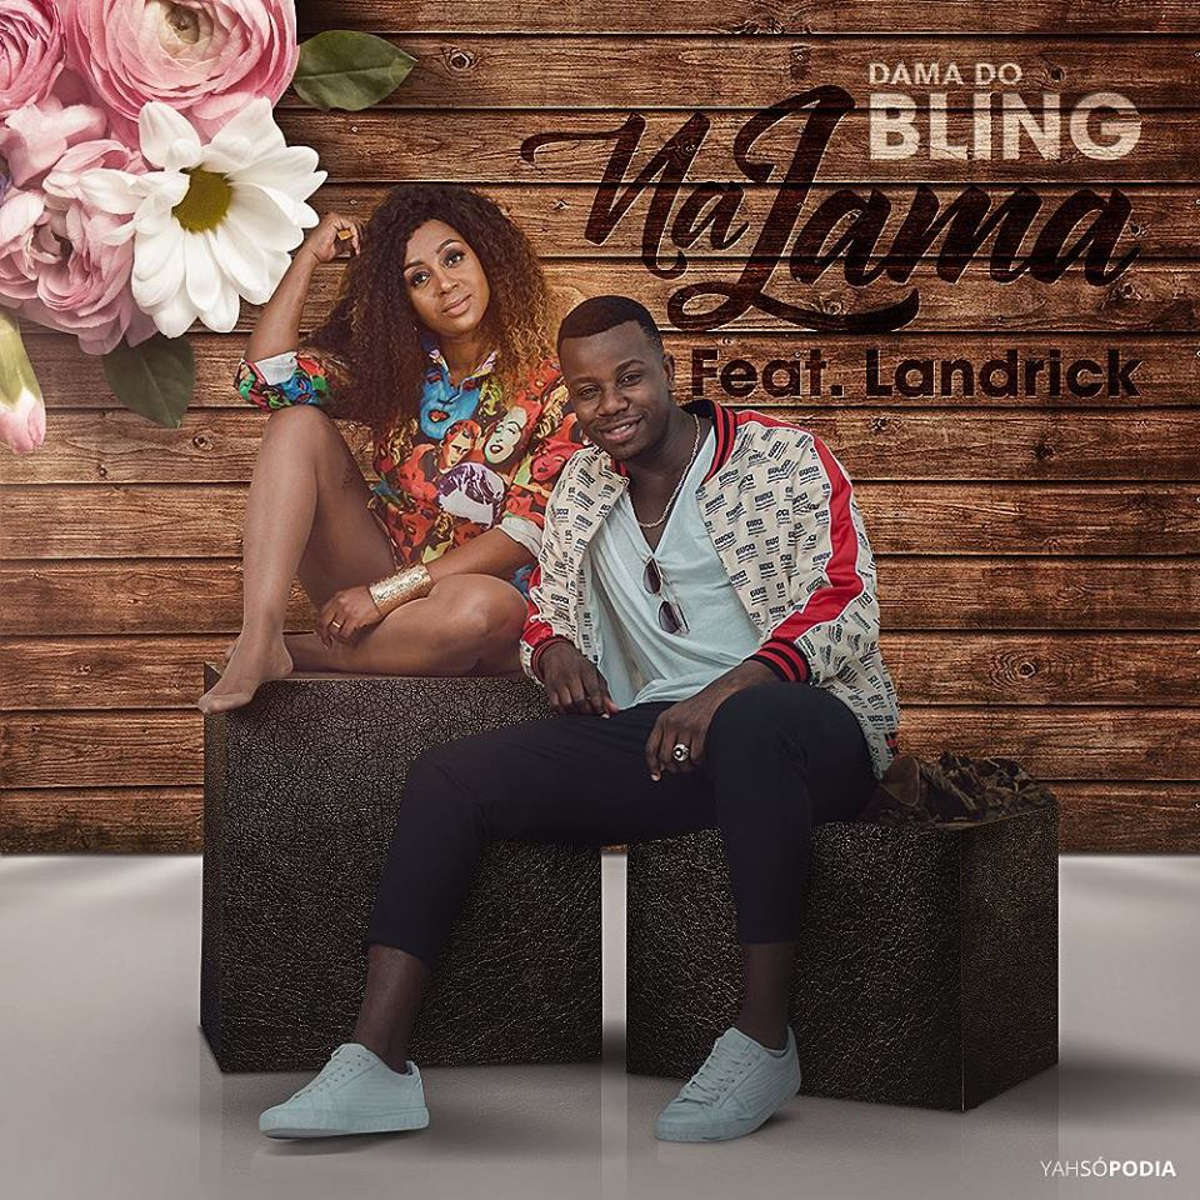 Dama do Bling - Na Lama (feat. Landrick) 2019